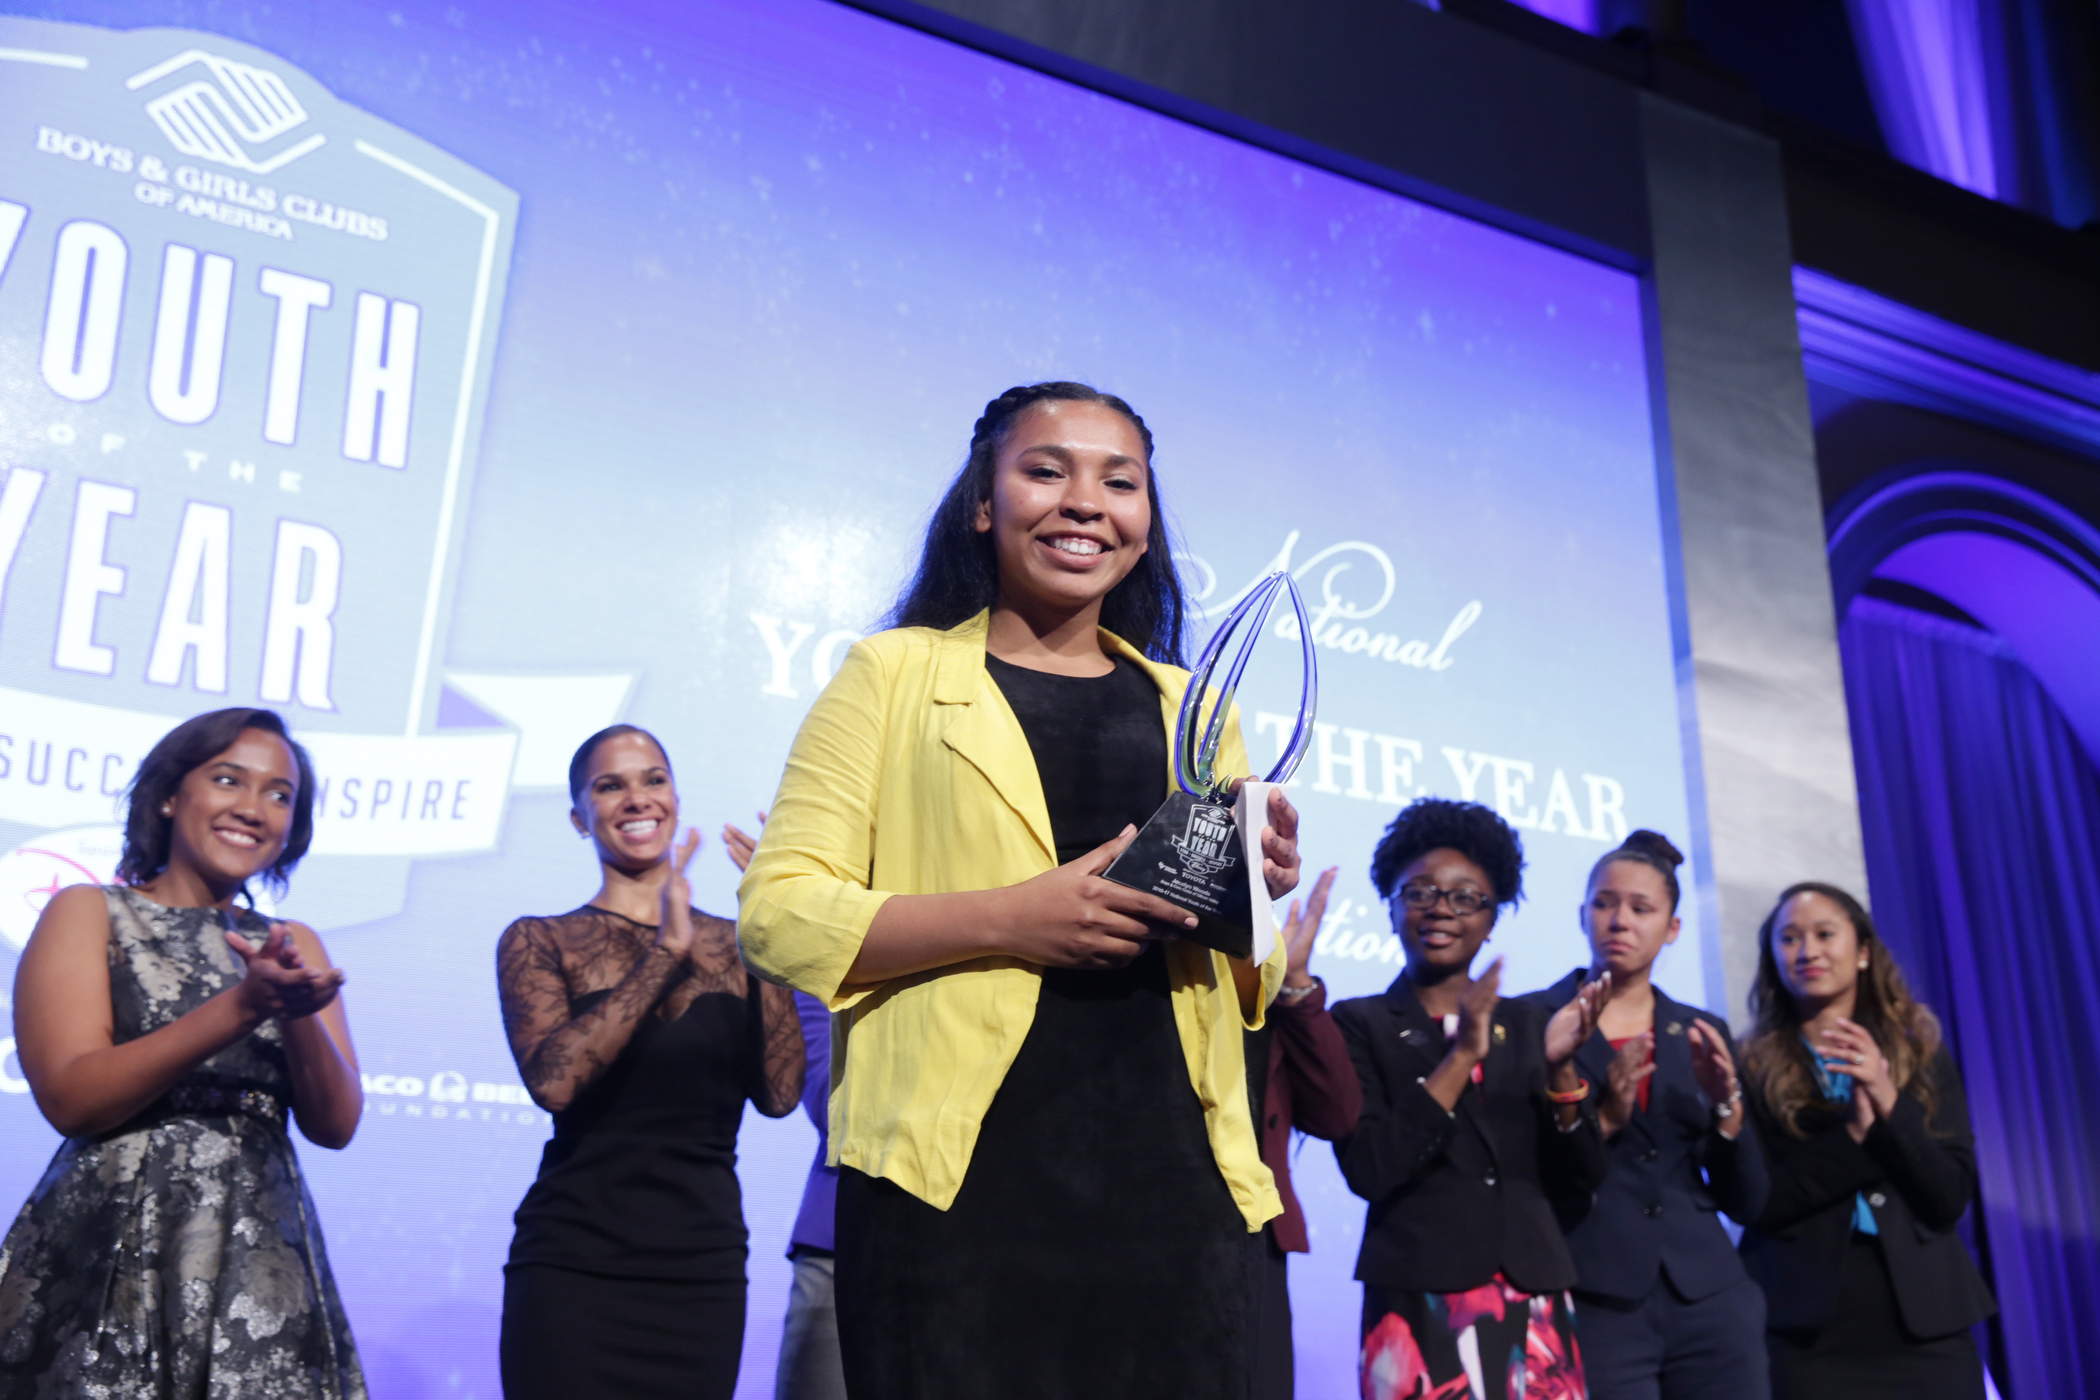 Jocelyn accepts National Youth of the Year title while American Ballet Theatre principal and Club alum Misty Copeland cheers her on